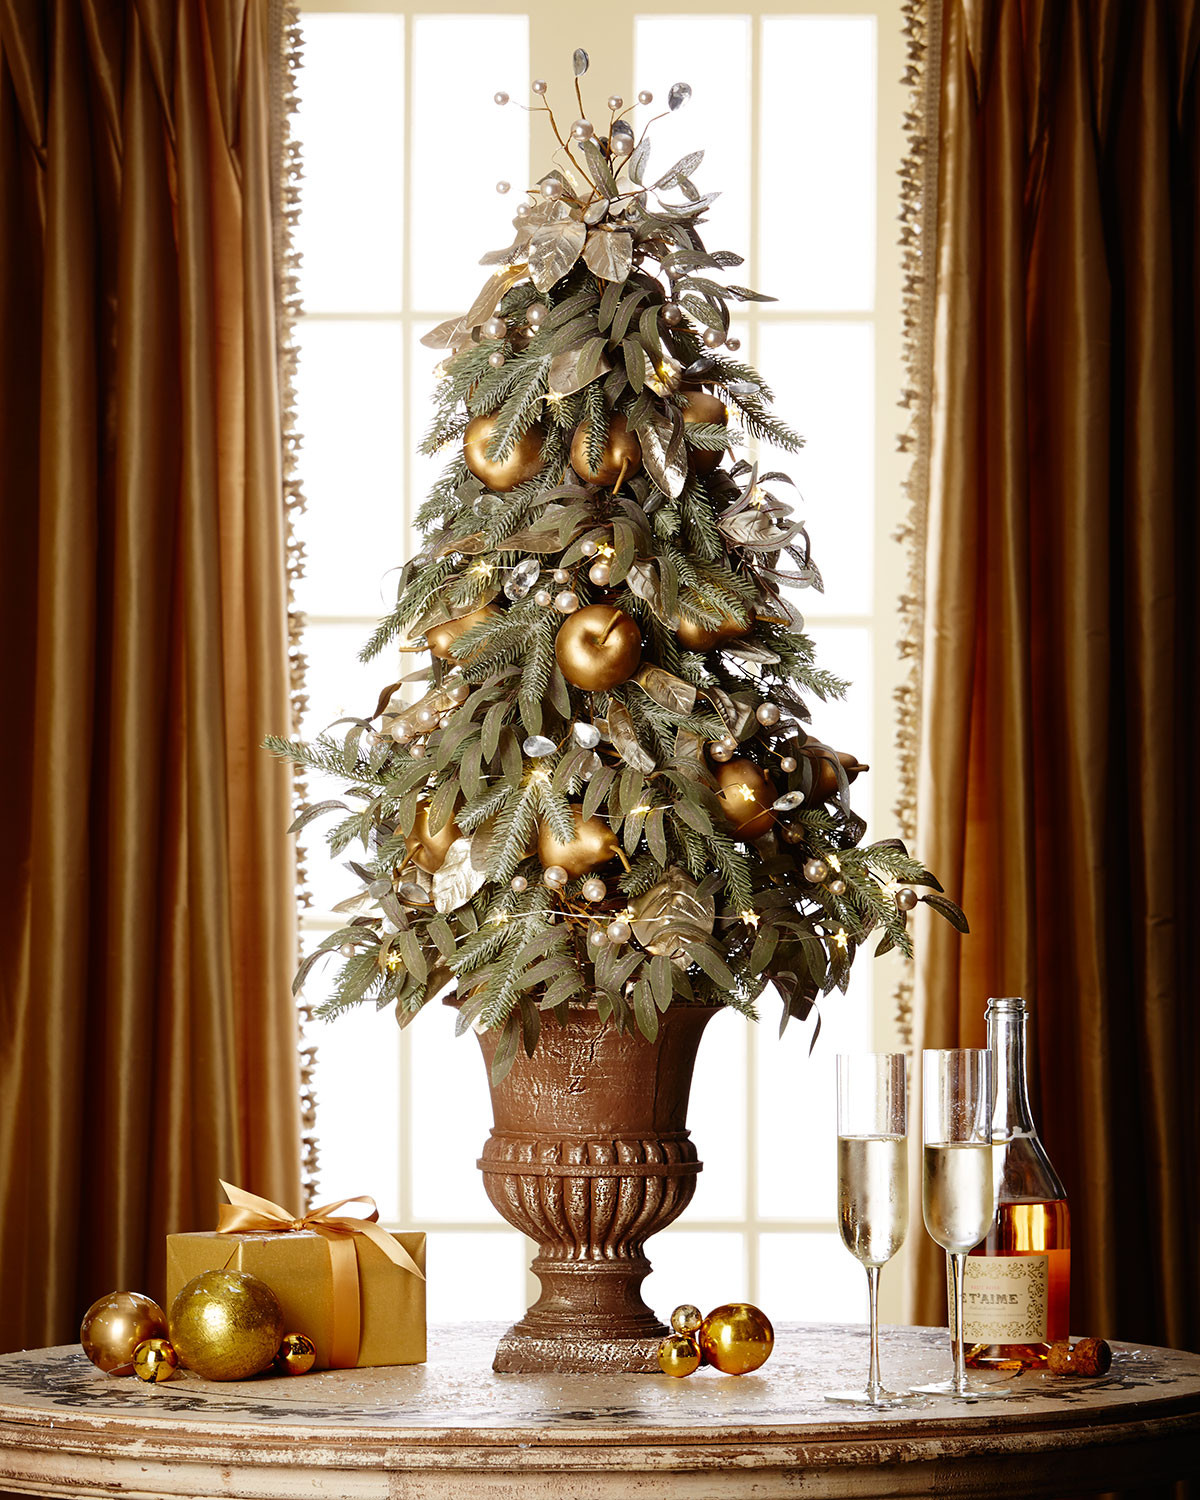 Unusual Christmas Decorations Fresh Fresh and Modern Furniture Design Ideas Traditional and Of Delightful 42 Pictures Unusual Christmas Decorations